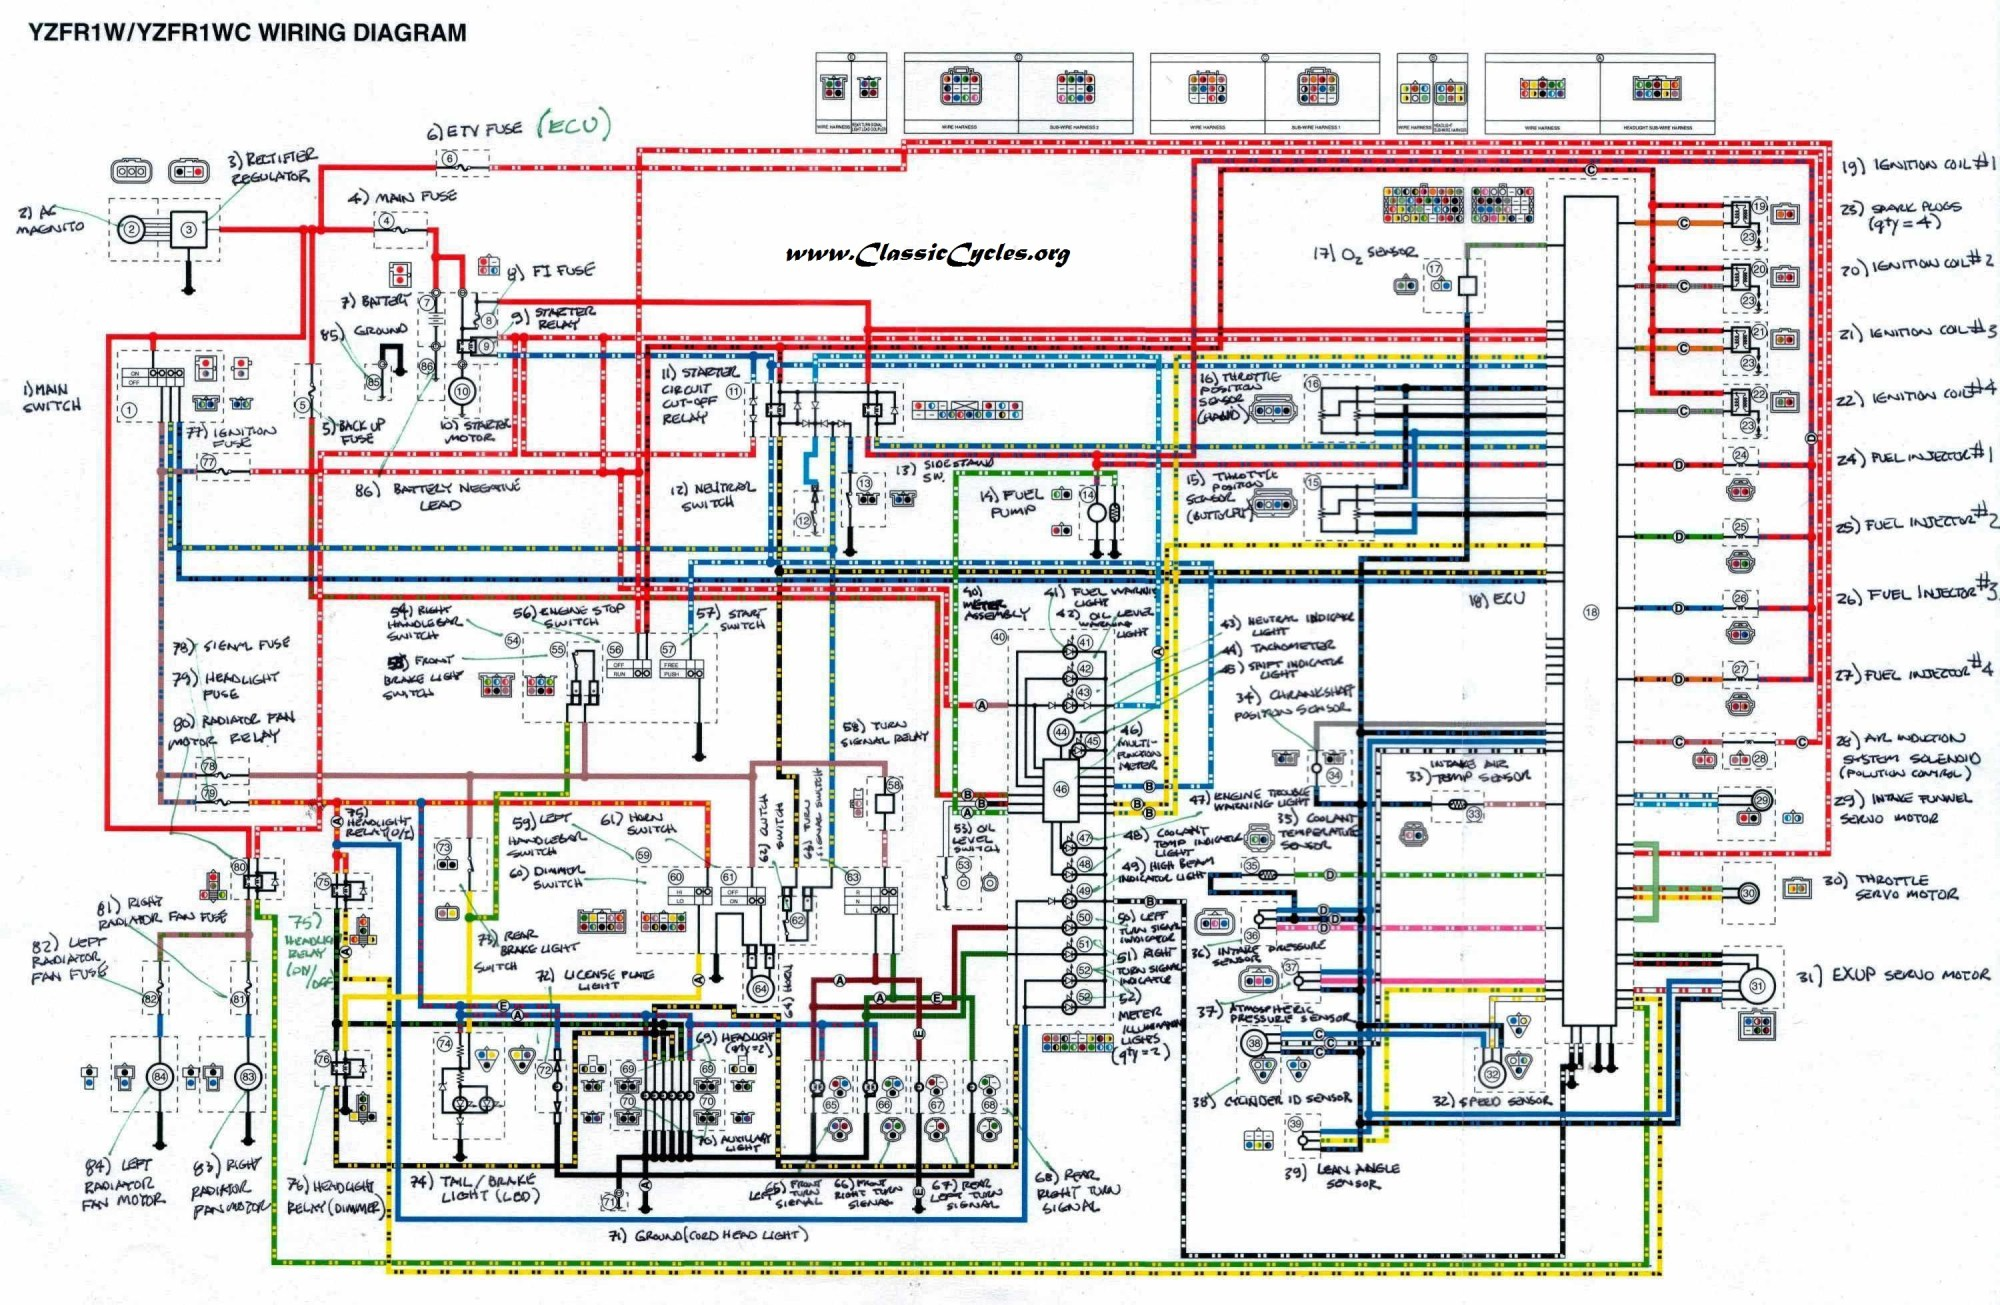 hight resolution of 1972 yamaha 400 wiring diagram wiring diagram for you yamaha ct1 wiring diagram 1972 yamaha